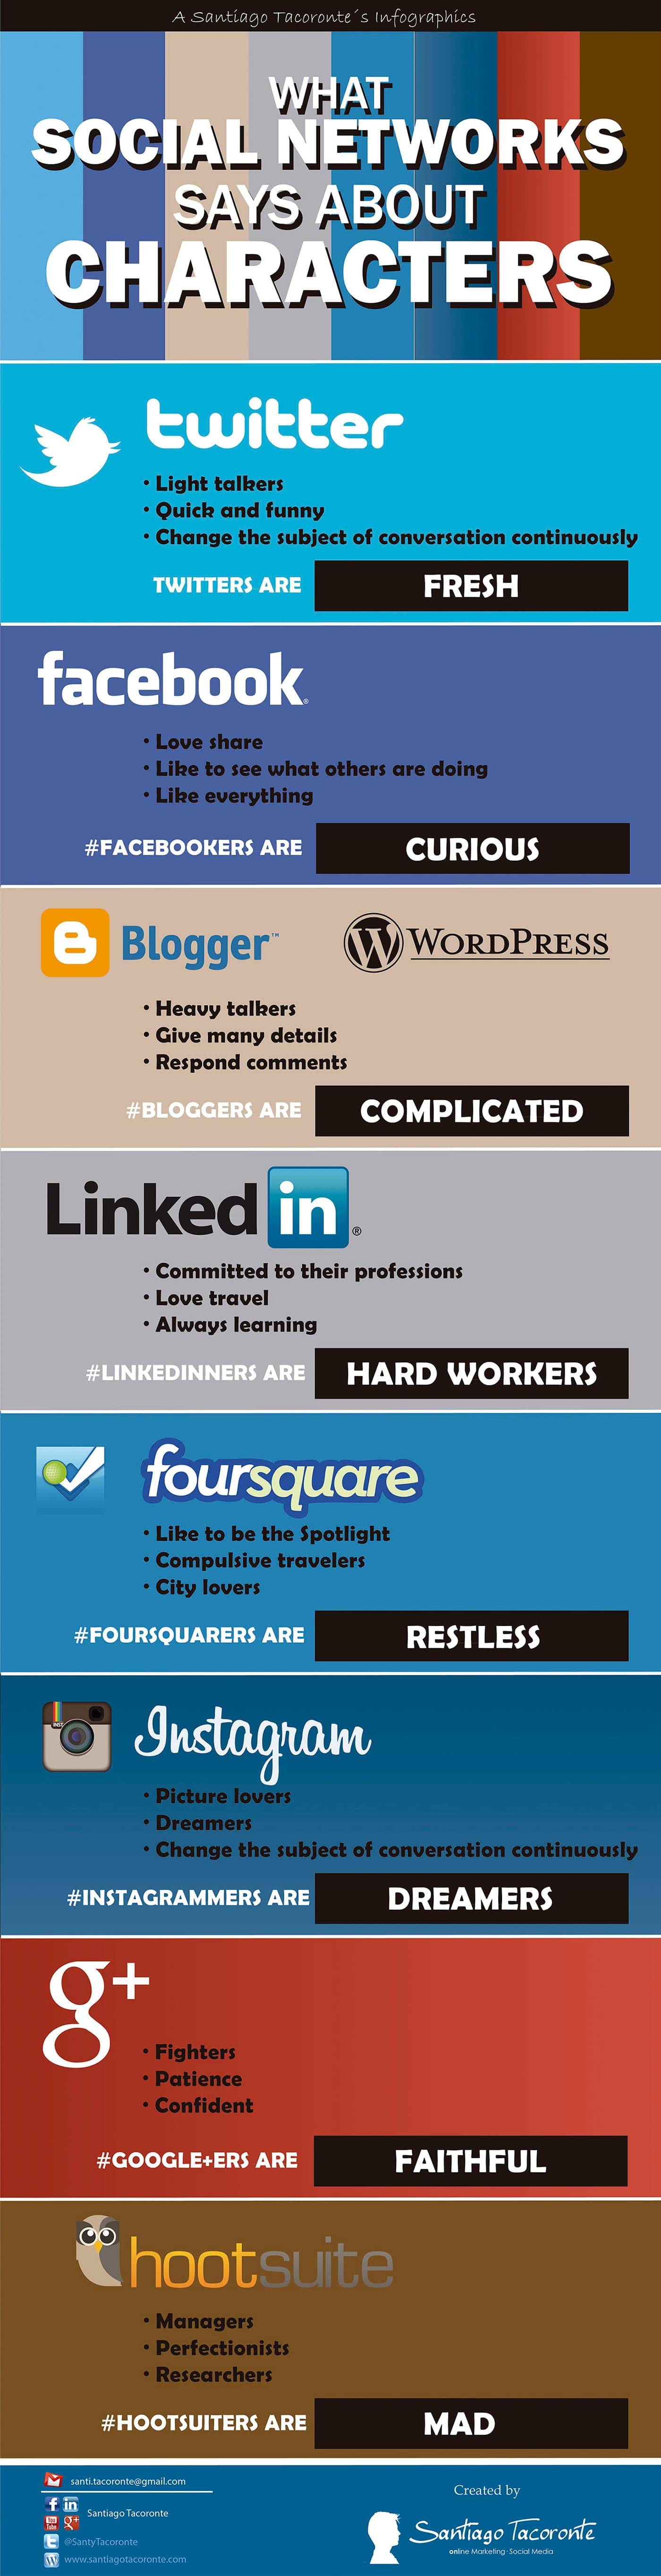 What Your Fav Social Site Says About Your Personality [Infographic]